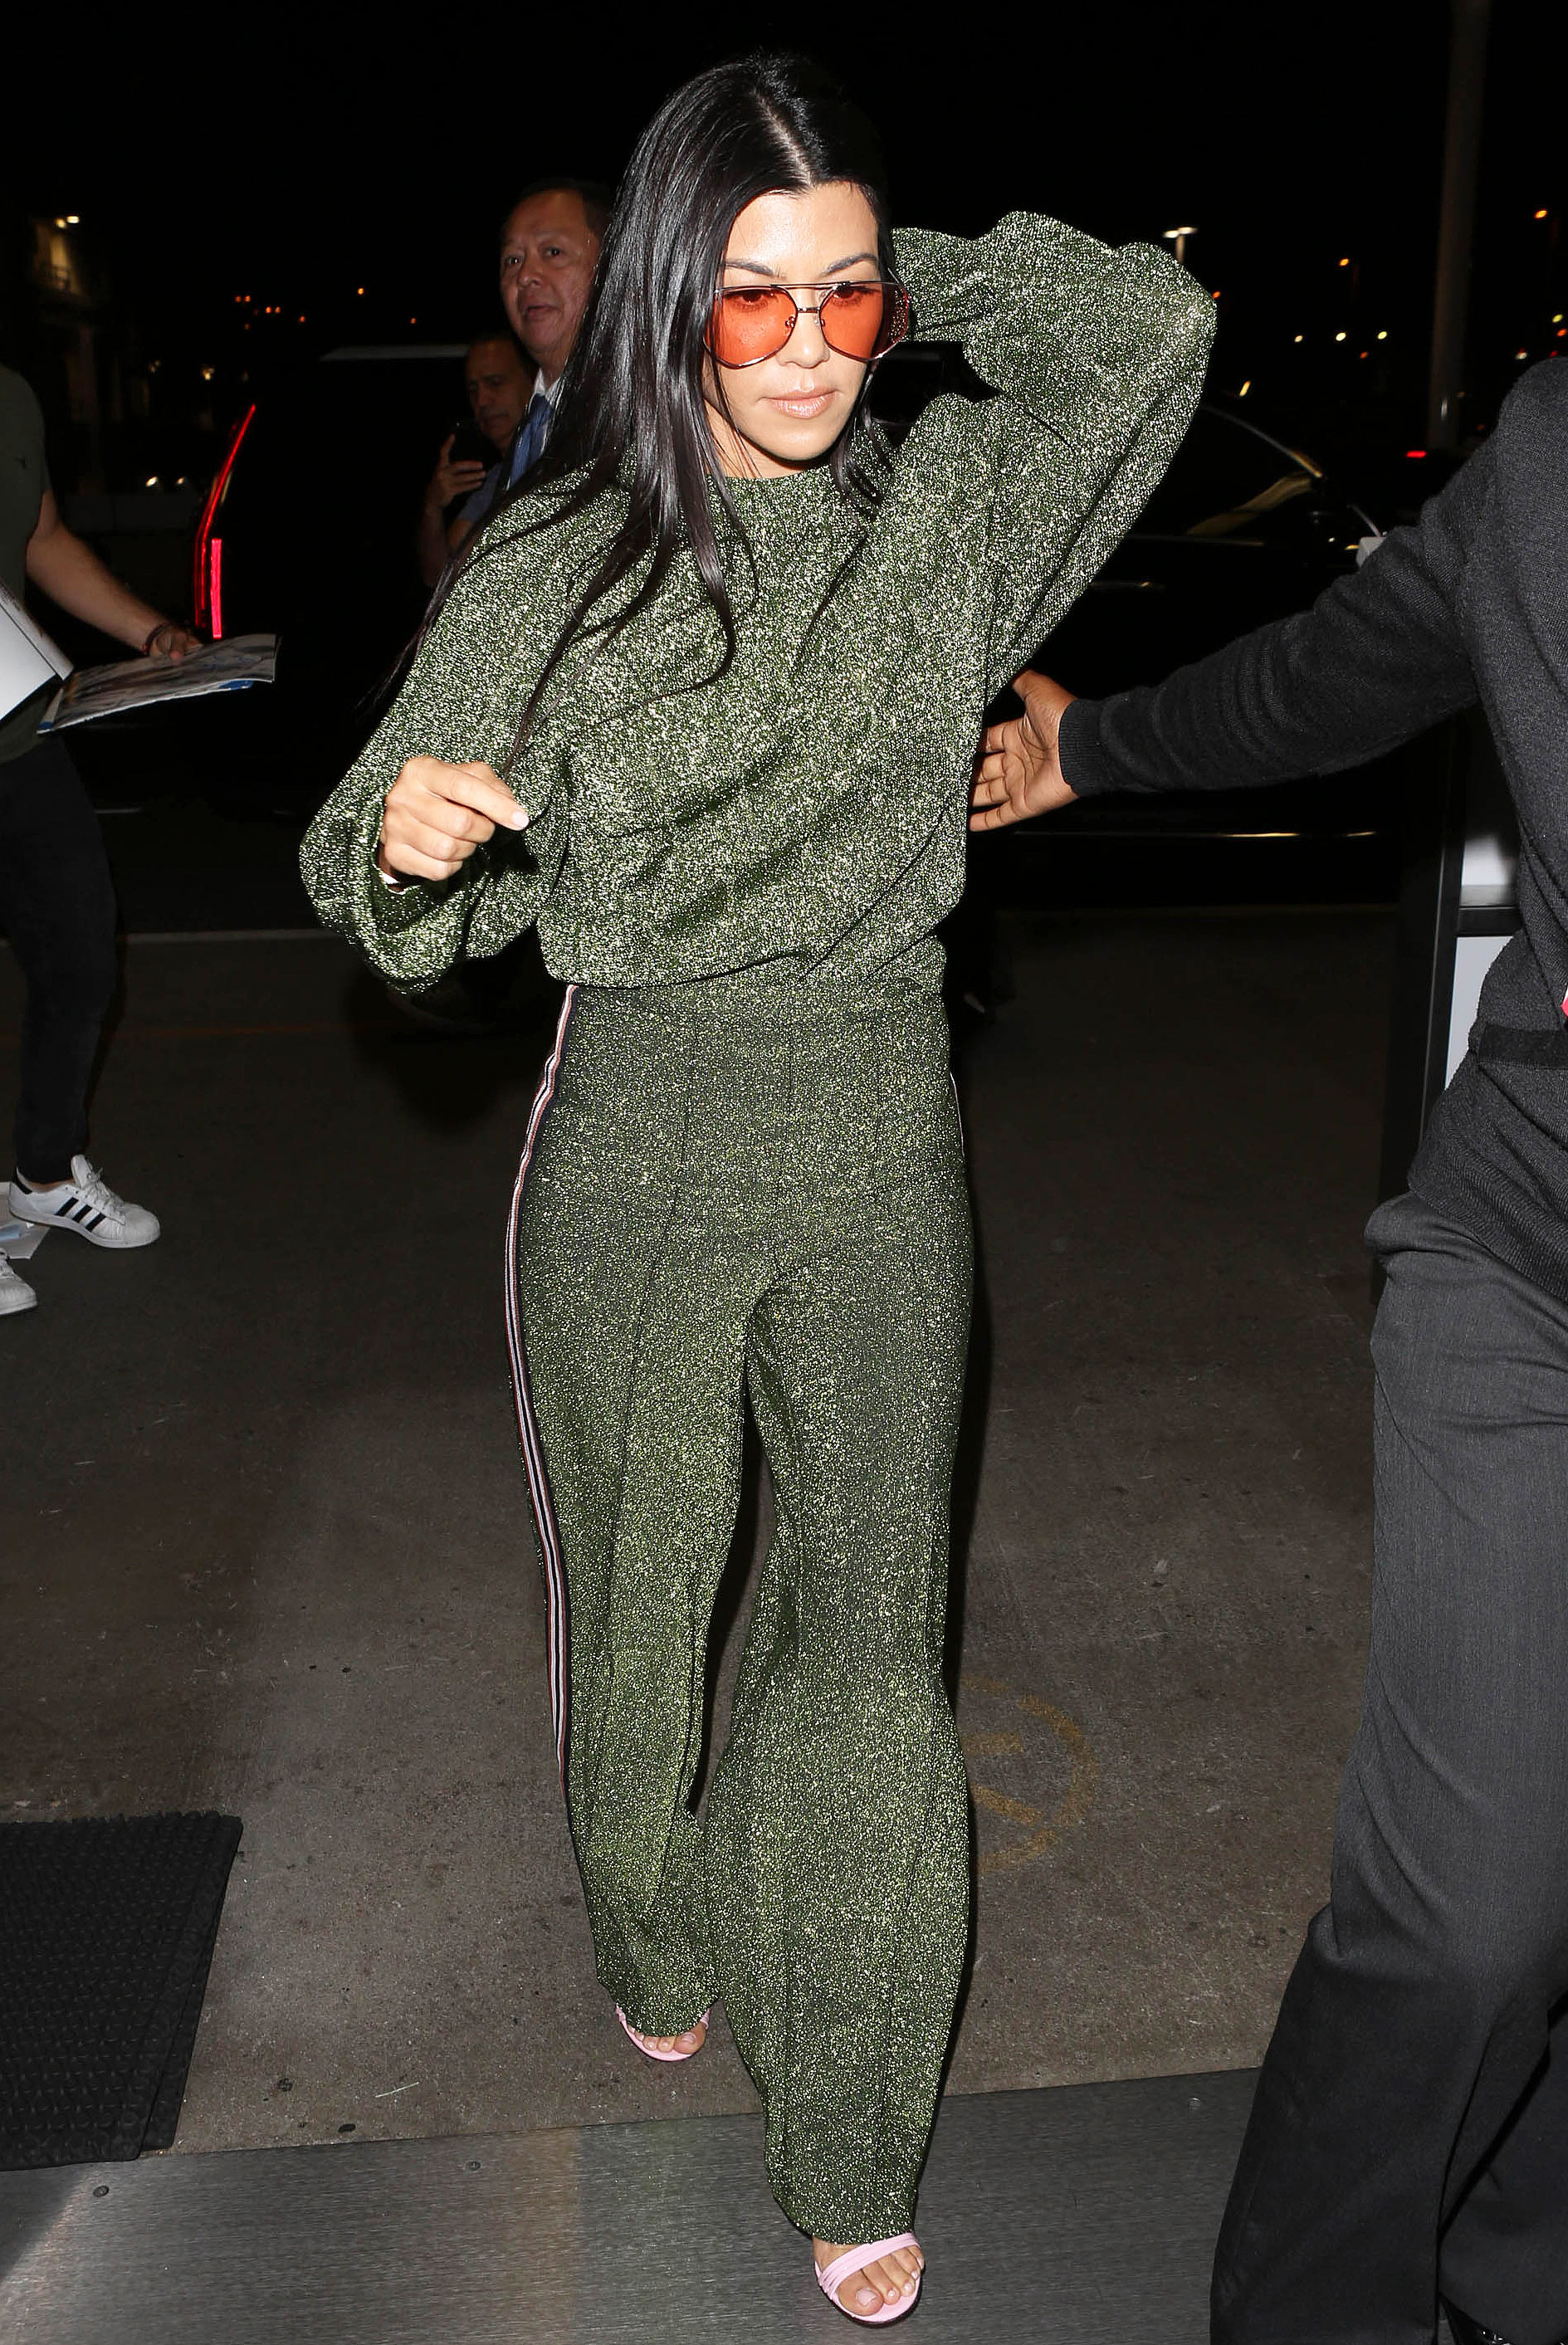 Kourtney and Khloe Kardashian Traveled in Glitter Sweats and Stilettos, As Only the Klan Can